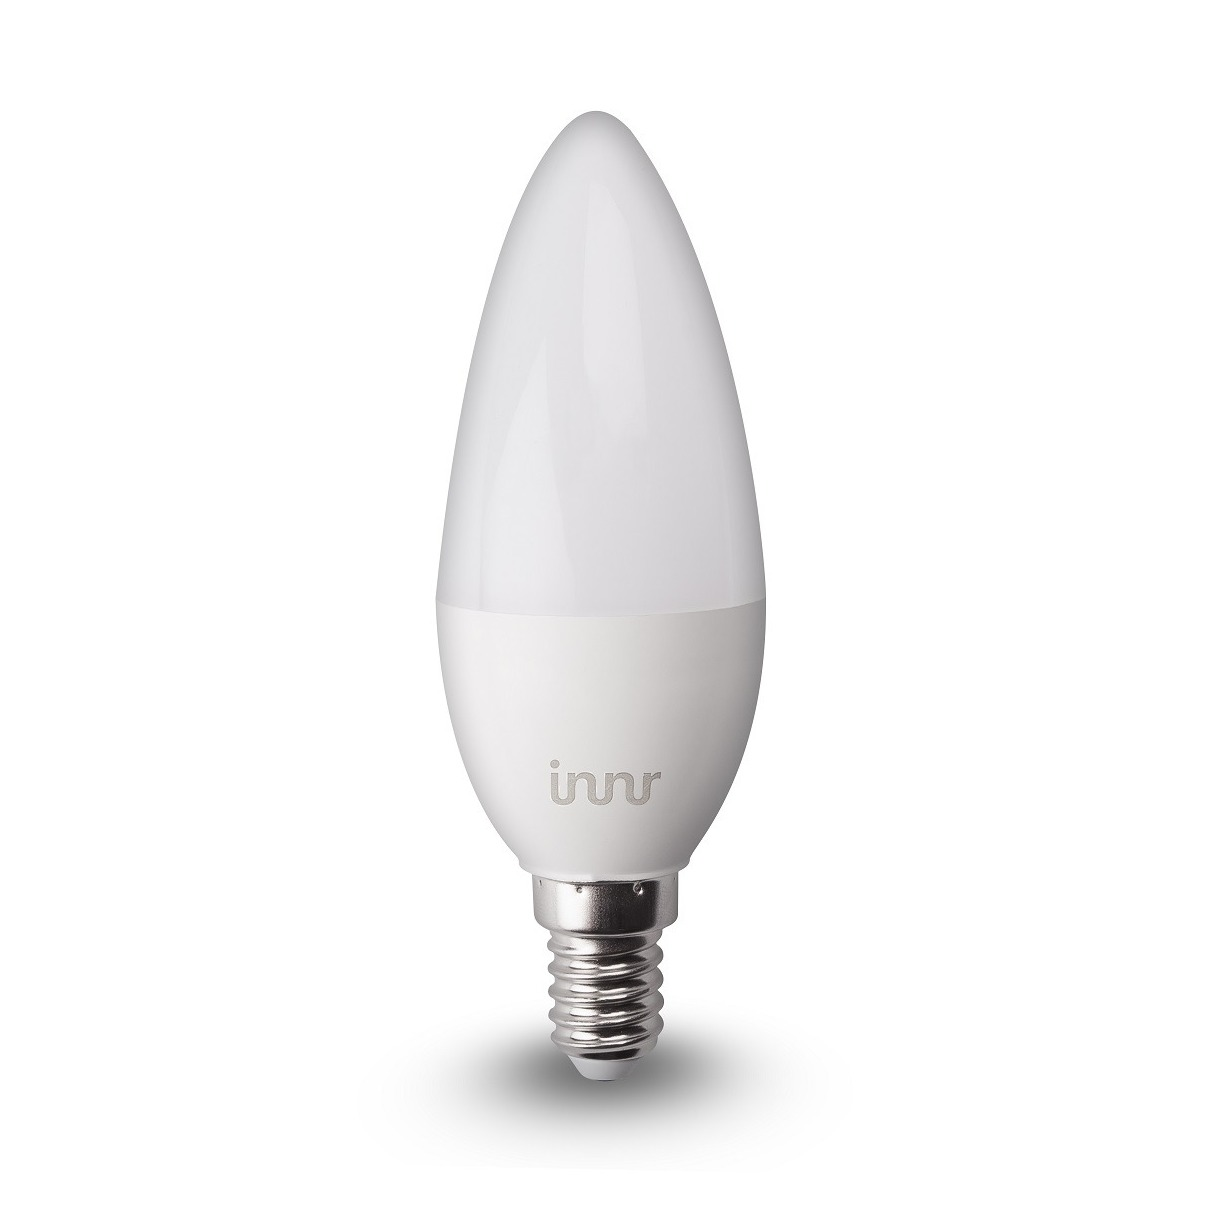 Innr smartverlichting Smart LED-bulb (E14) Tunable White - RB 148 T